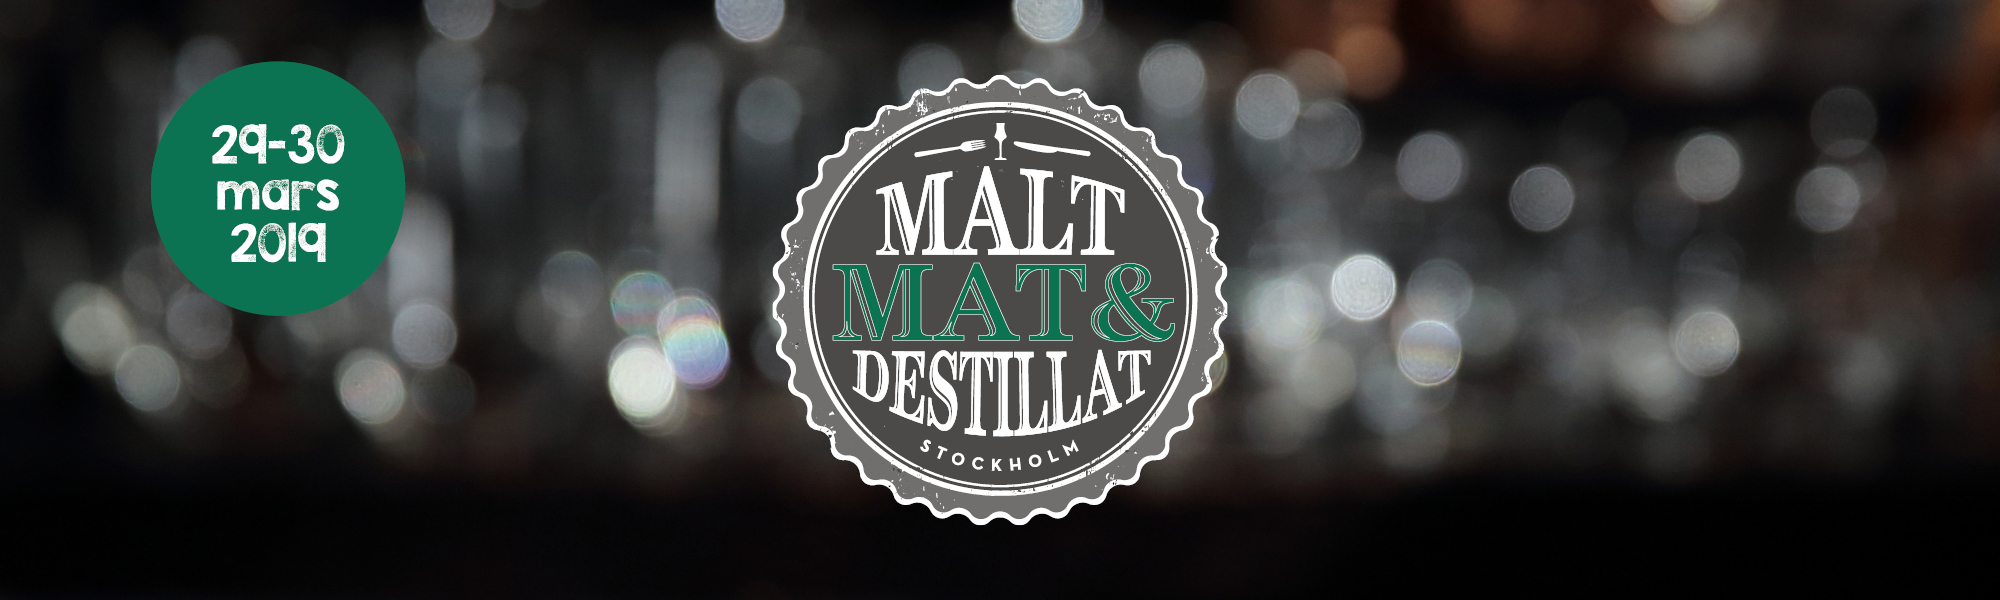 Malt Mat & Destillat jul